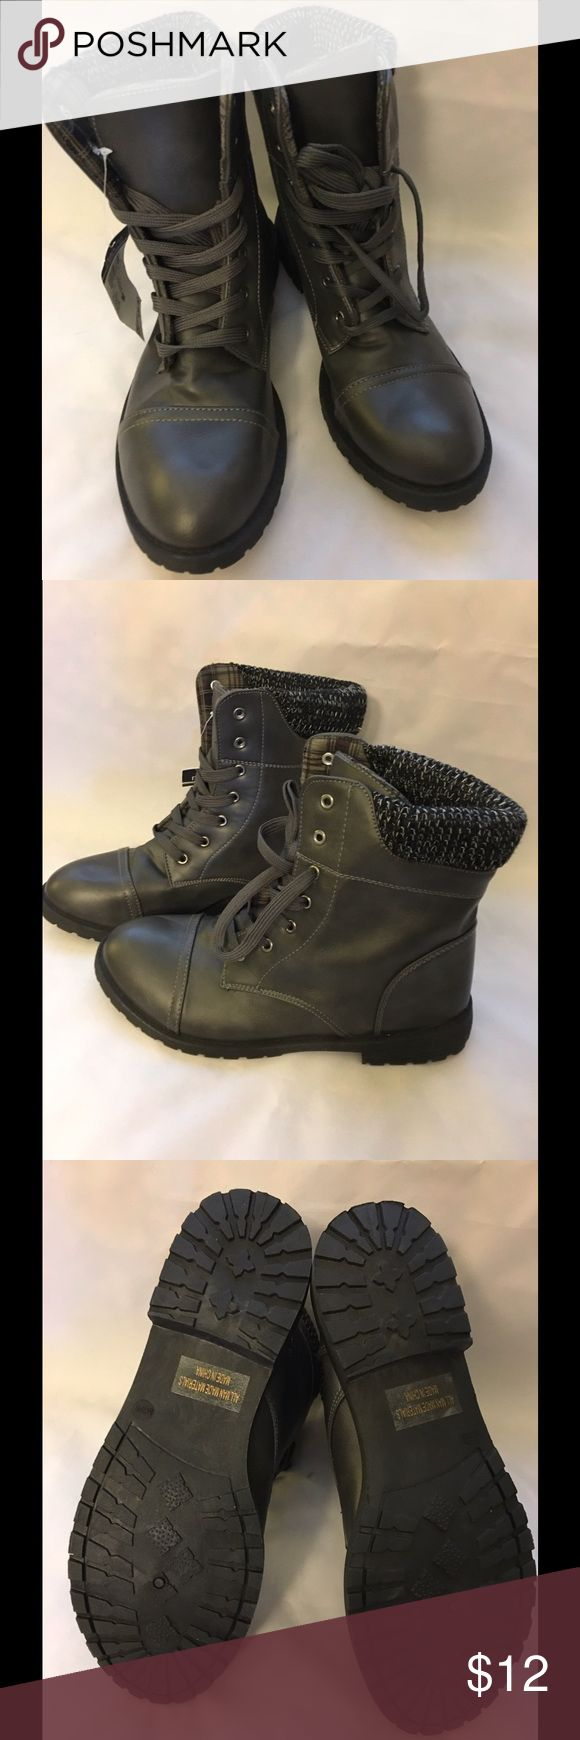 NWT Dark Gray Fashion Combat Boots Brand new with tags Rue21 lace up fashion boots. Rue 21 Shoes Lace Up Boots